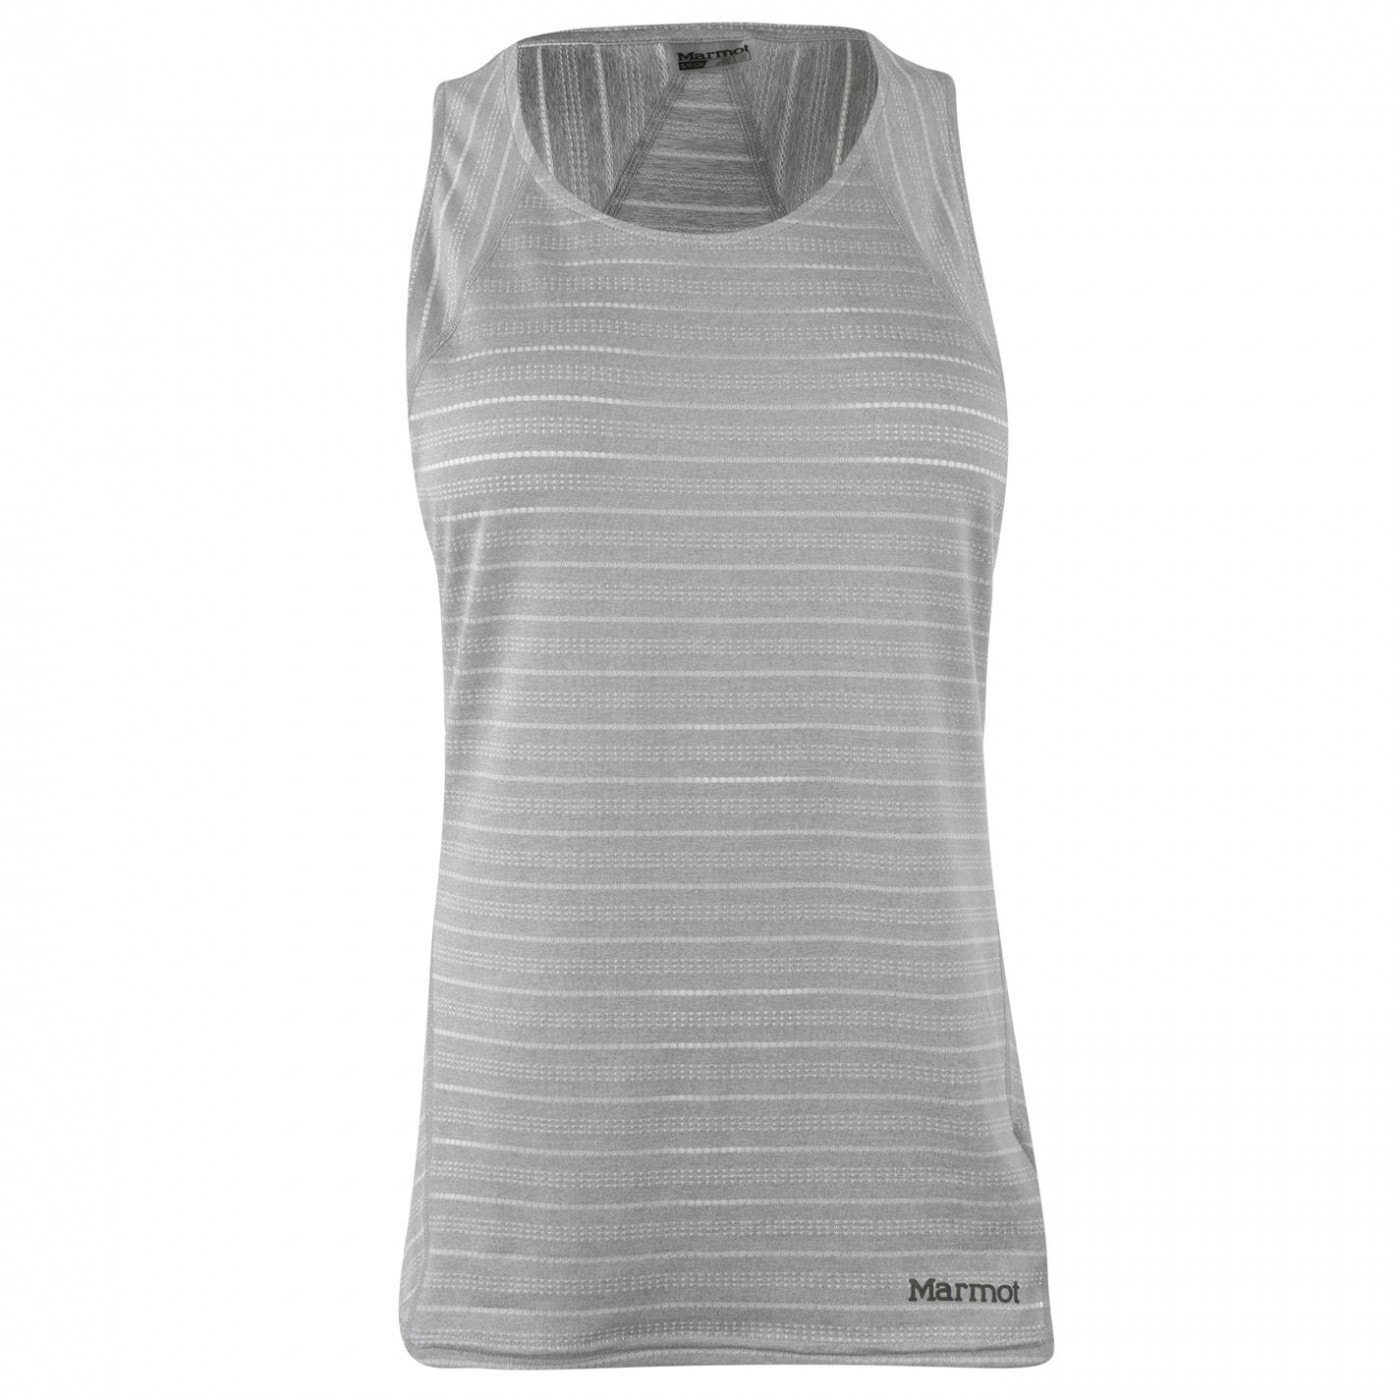 Marmot Ellie Tank Top Ladies